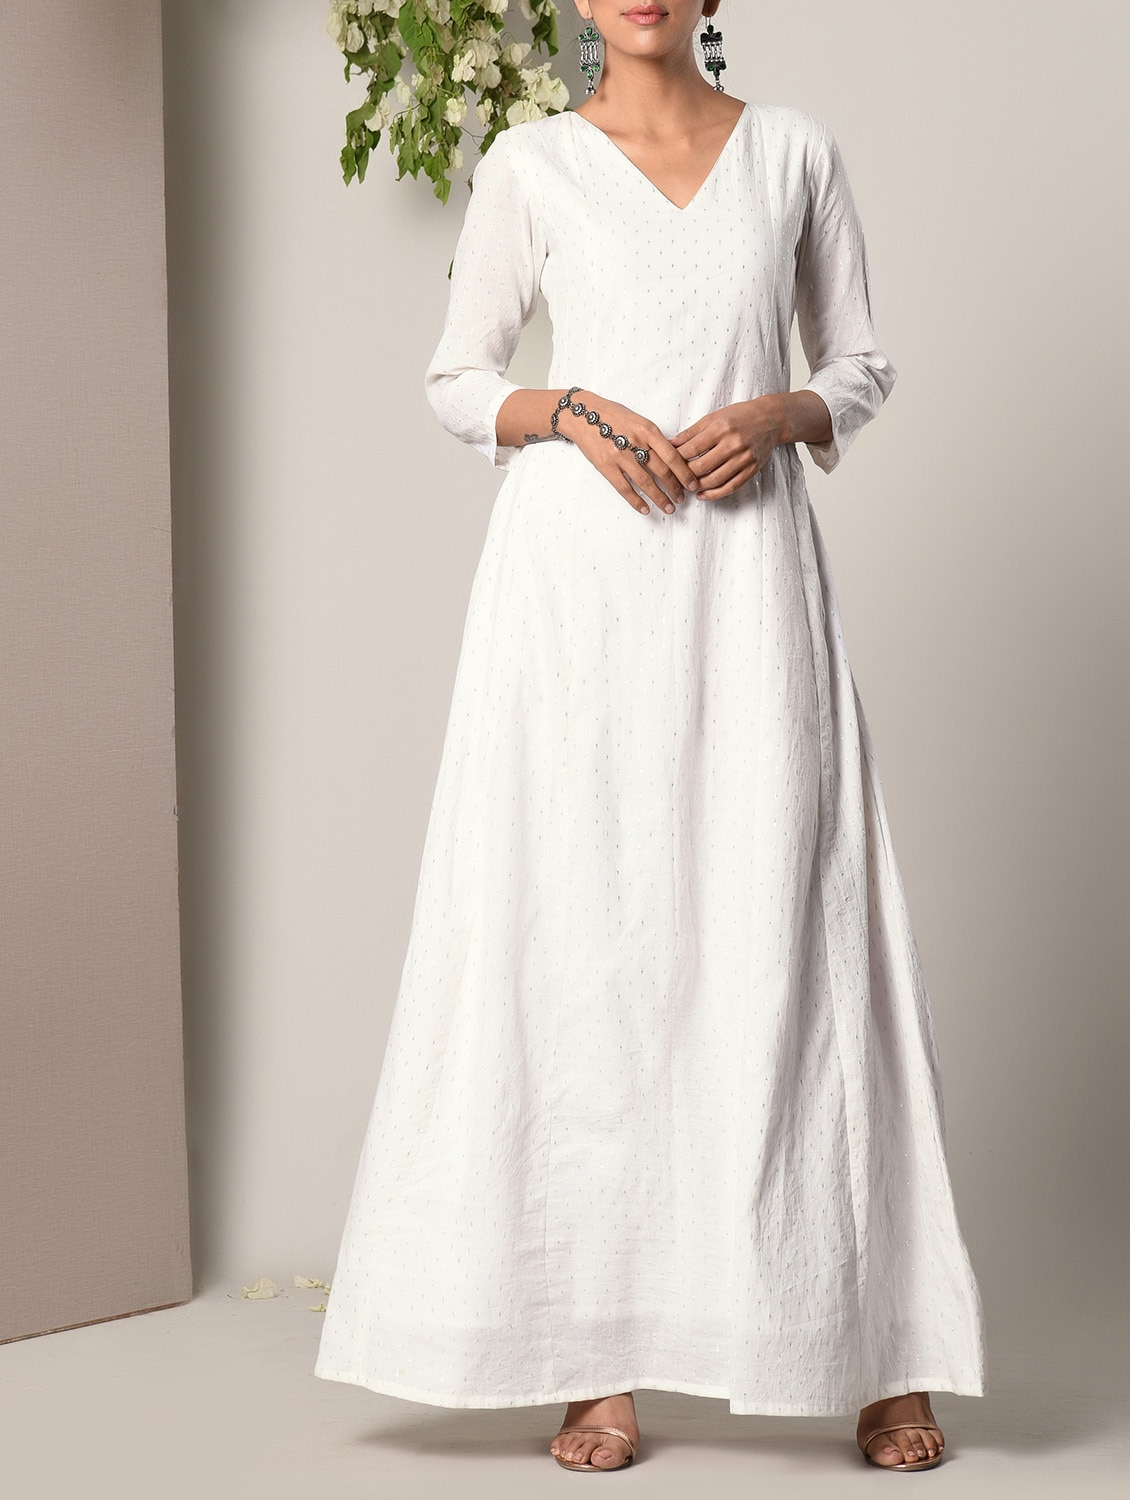 c0910cfe4264 Buy White Cotton Maxi Dress for Women from Truebrowns for ₹2999 at 0% off |  2019 Limeroad.com